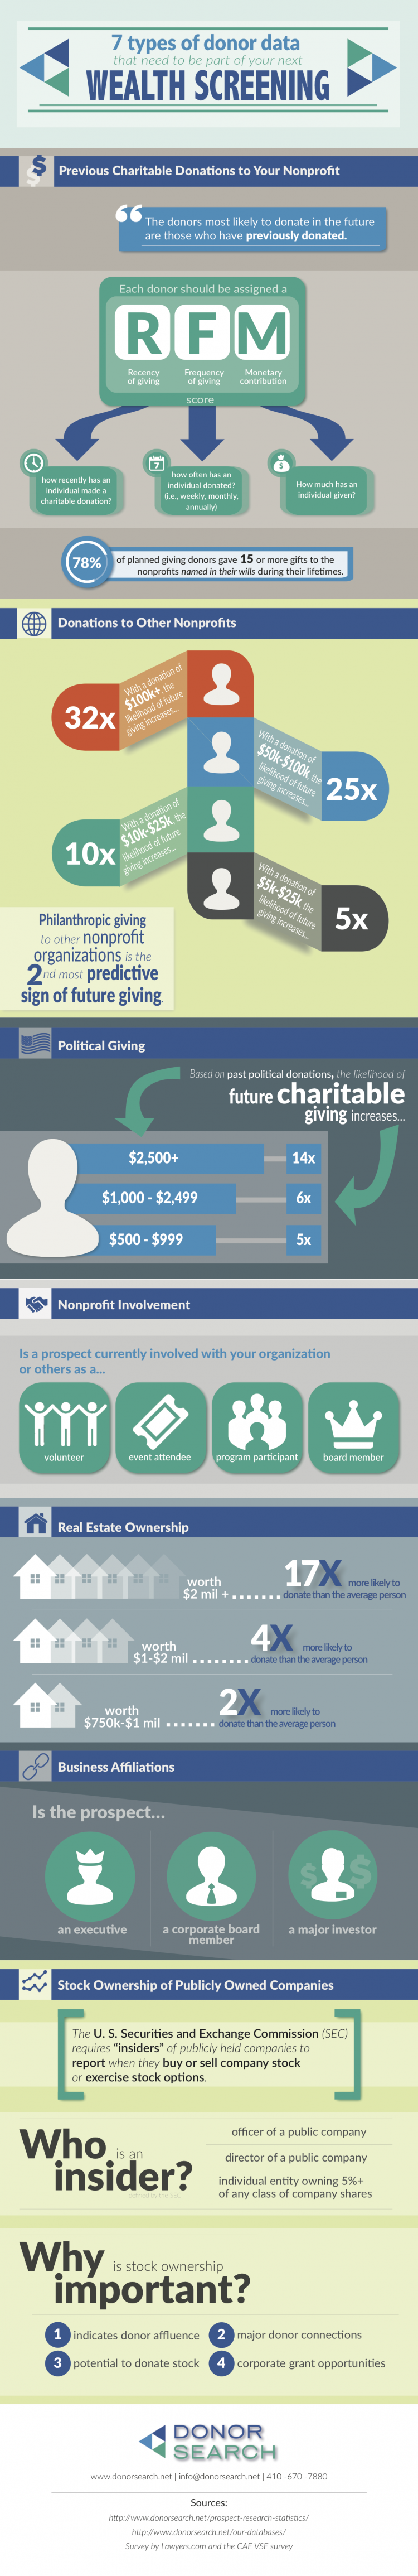 DonorSearchInfographic